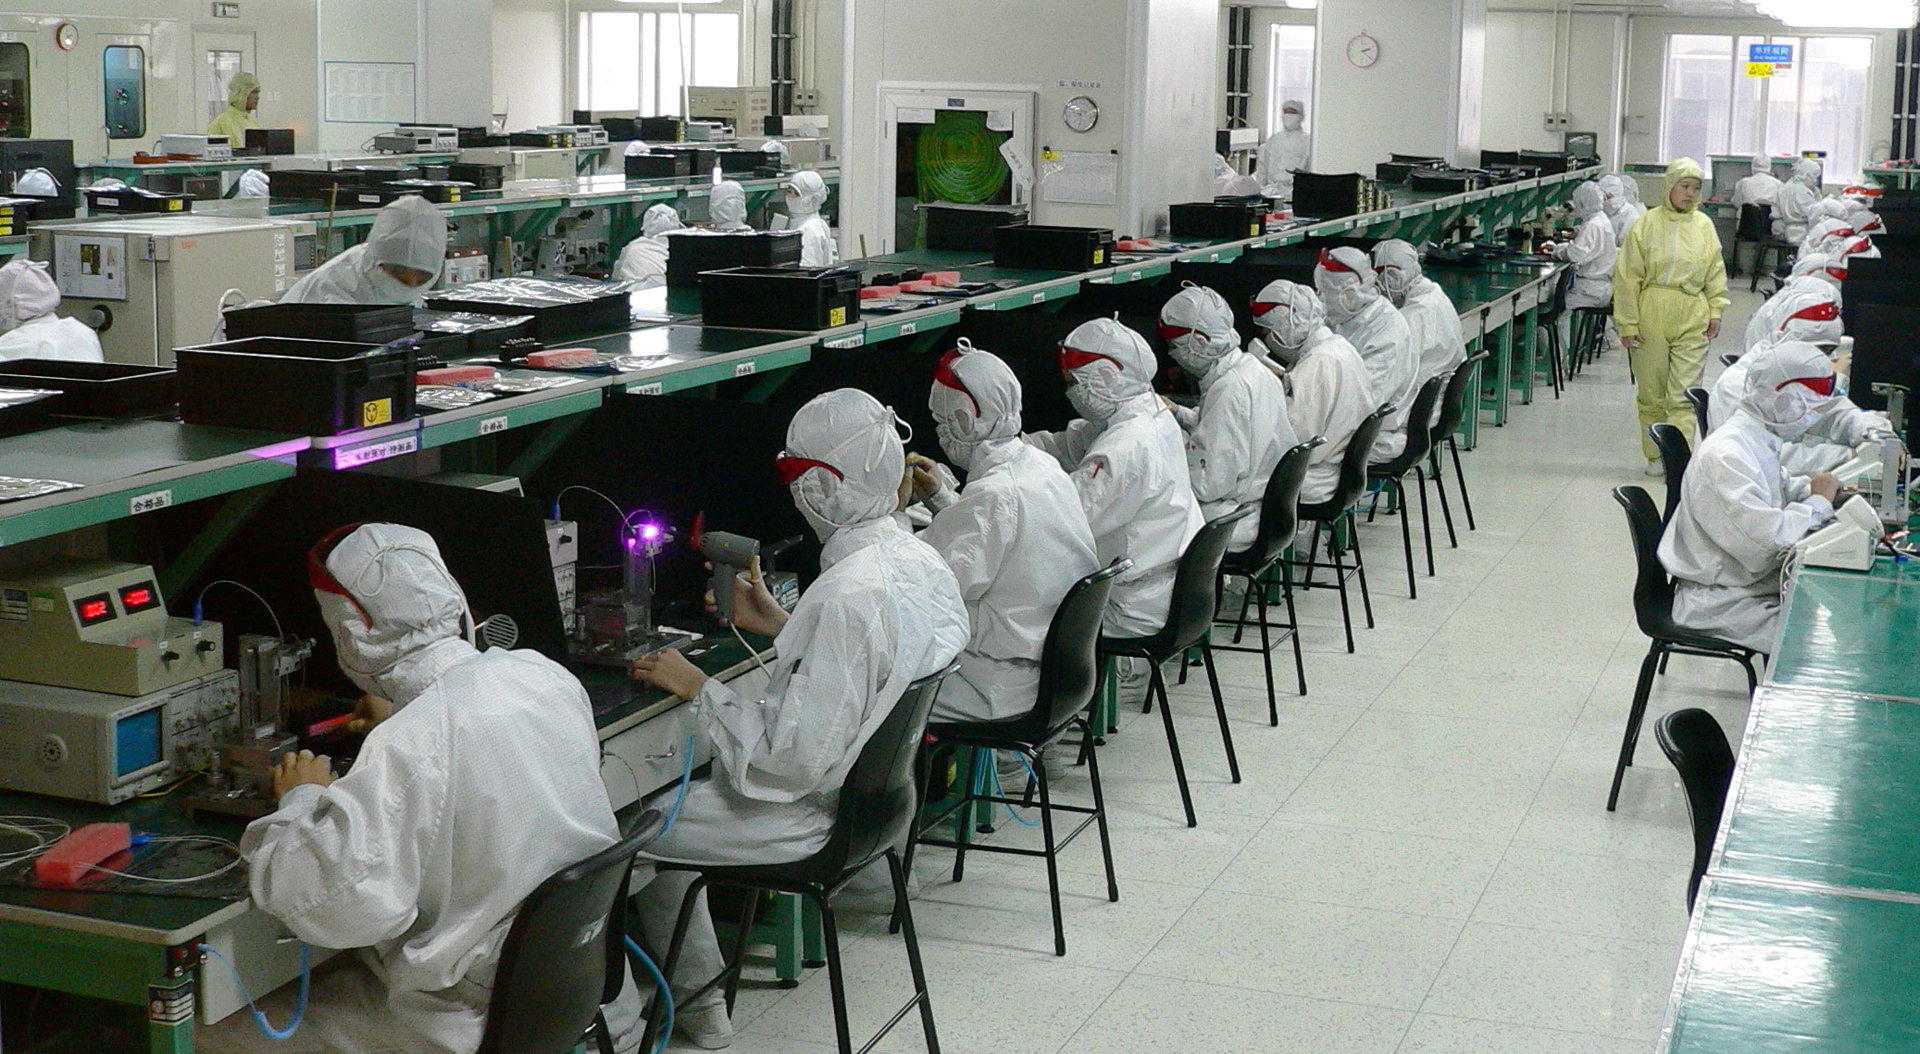 Foxconn Fabrik in Shenzhen, China